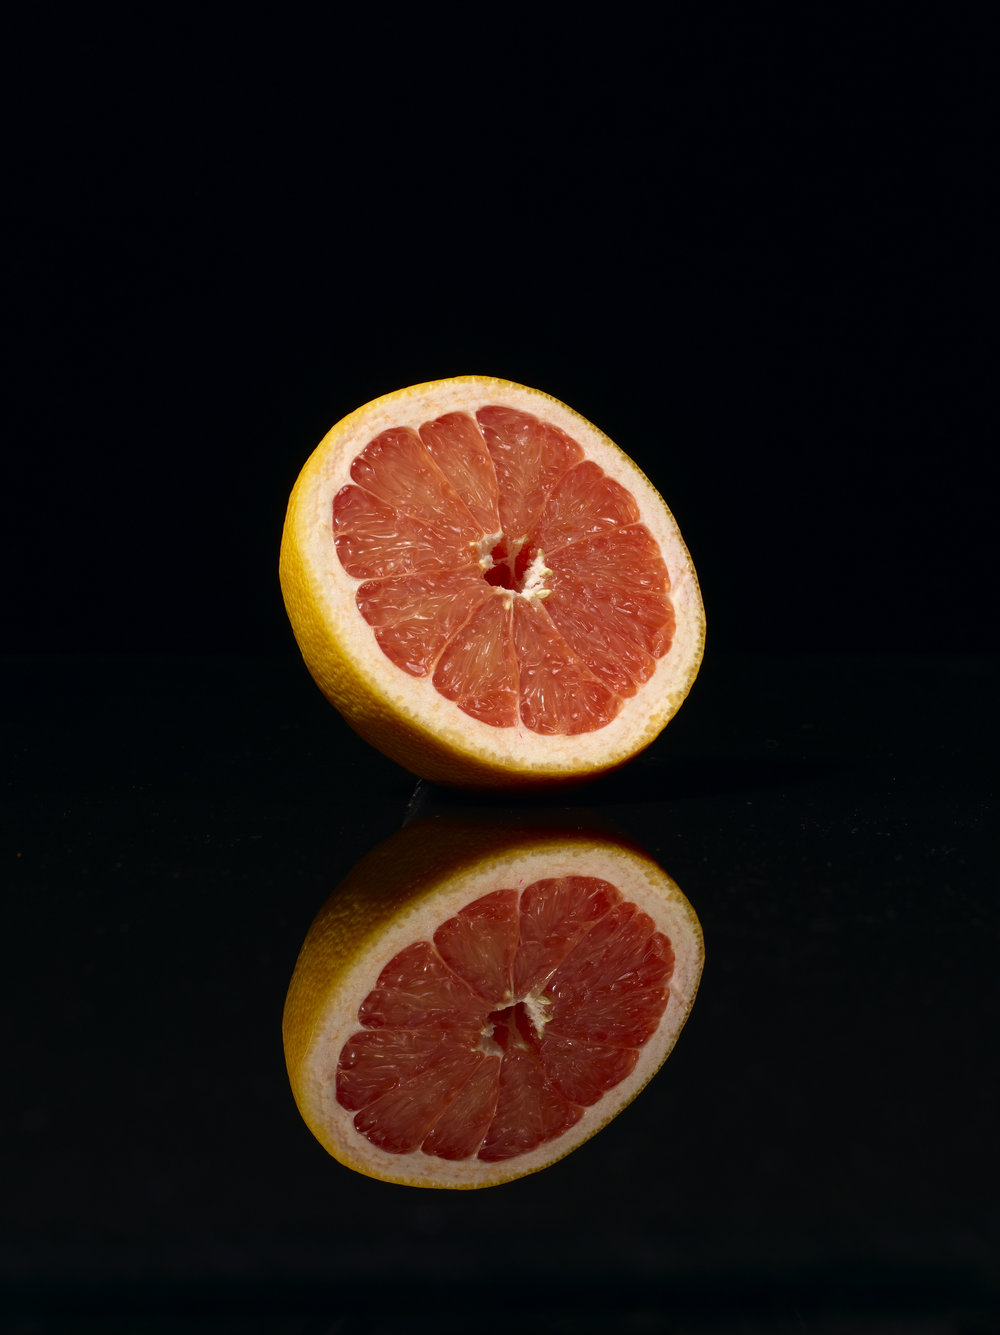 13_04_01_LO_B_grapefruit_042.jpg